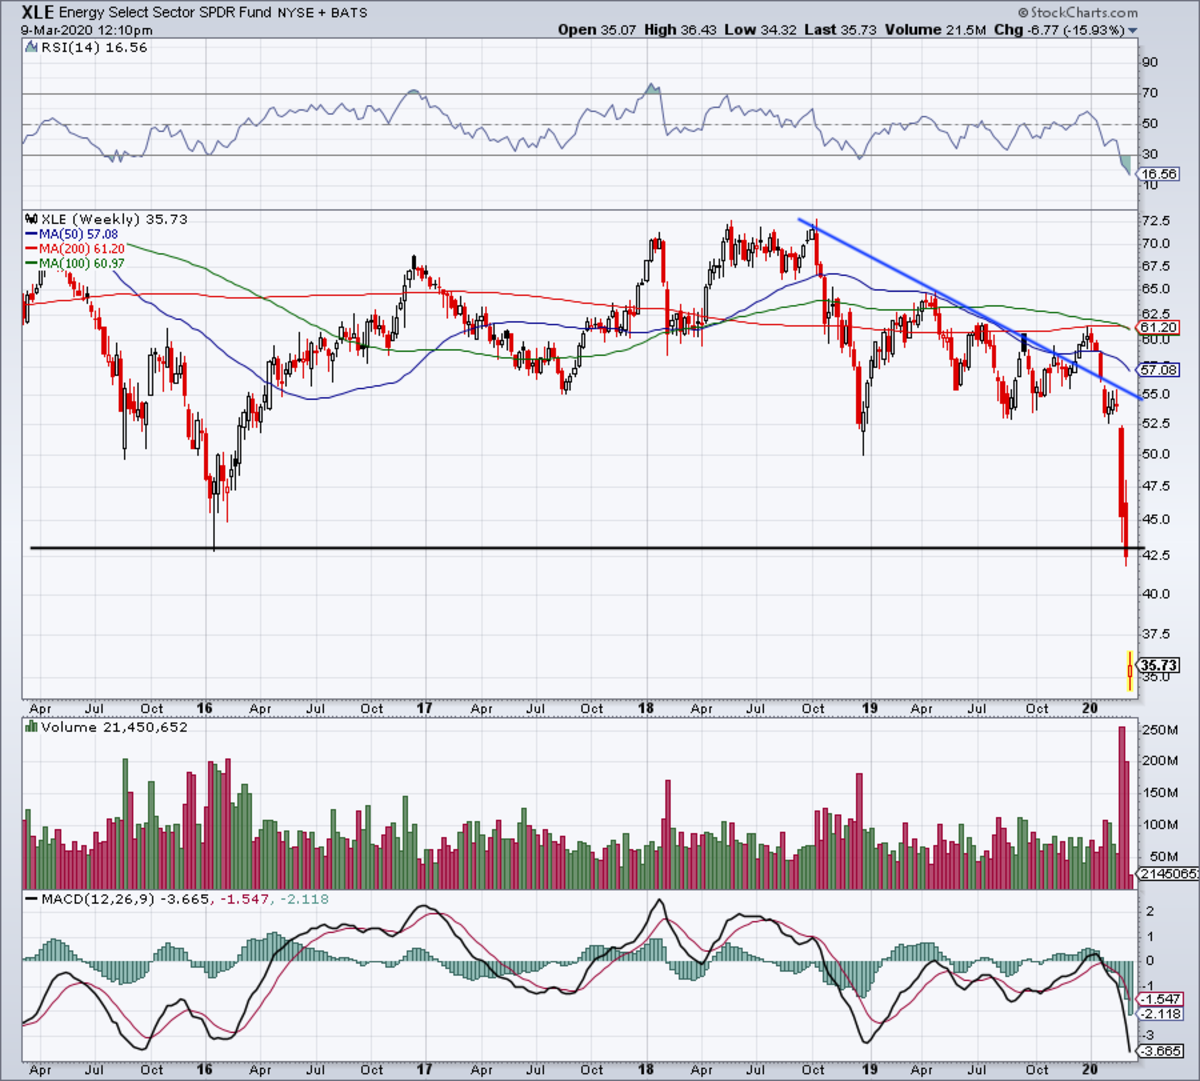 Five-year weekly chart of the XLE ETF.